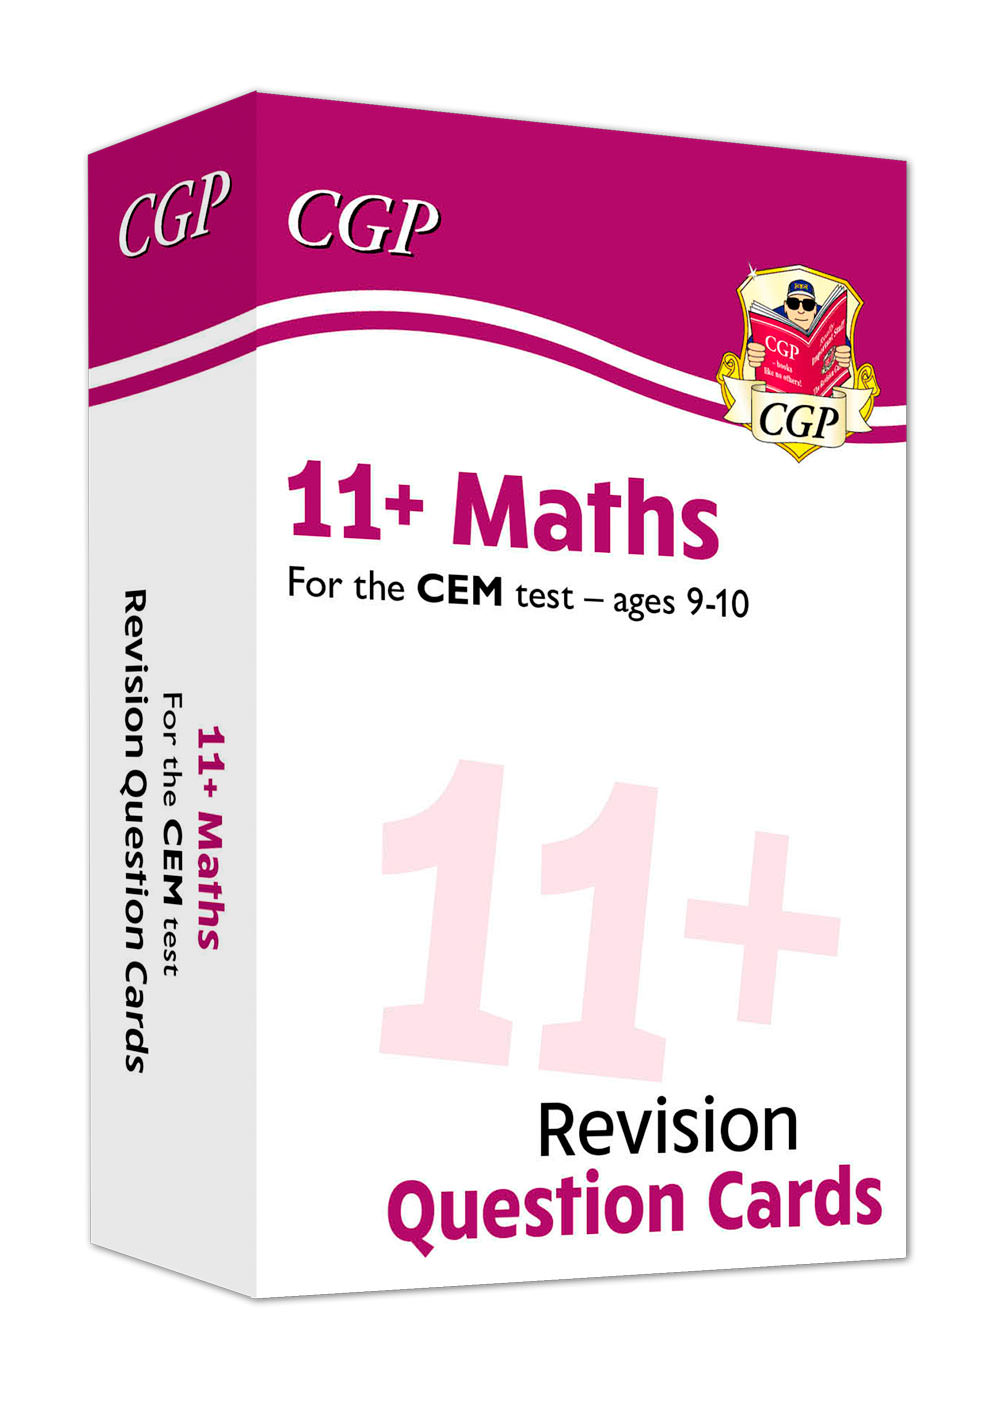 M5FDE1 - New 11+ CEM Revision Question Cards: Maths - Ages 9-10